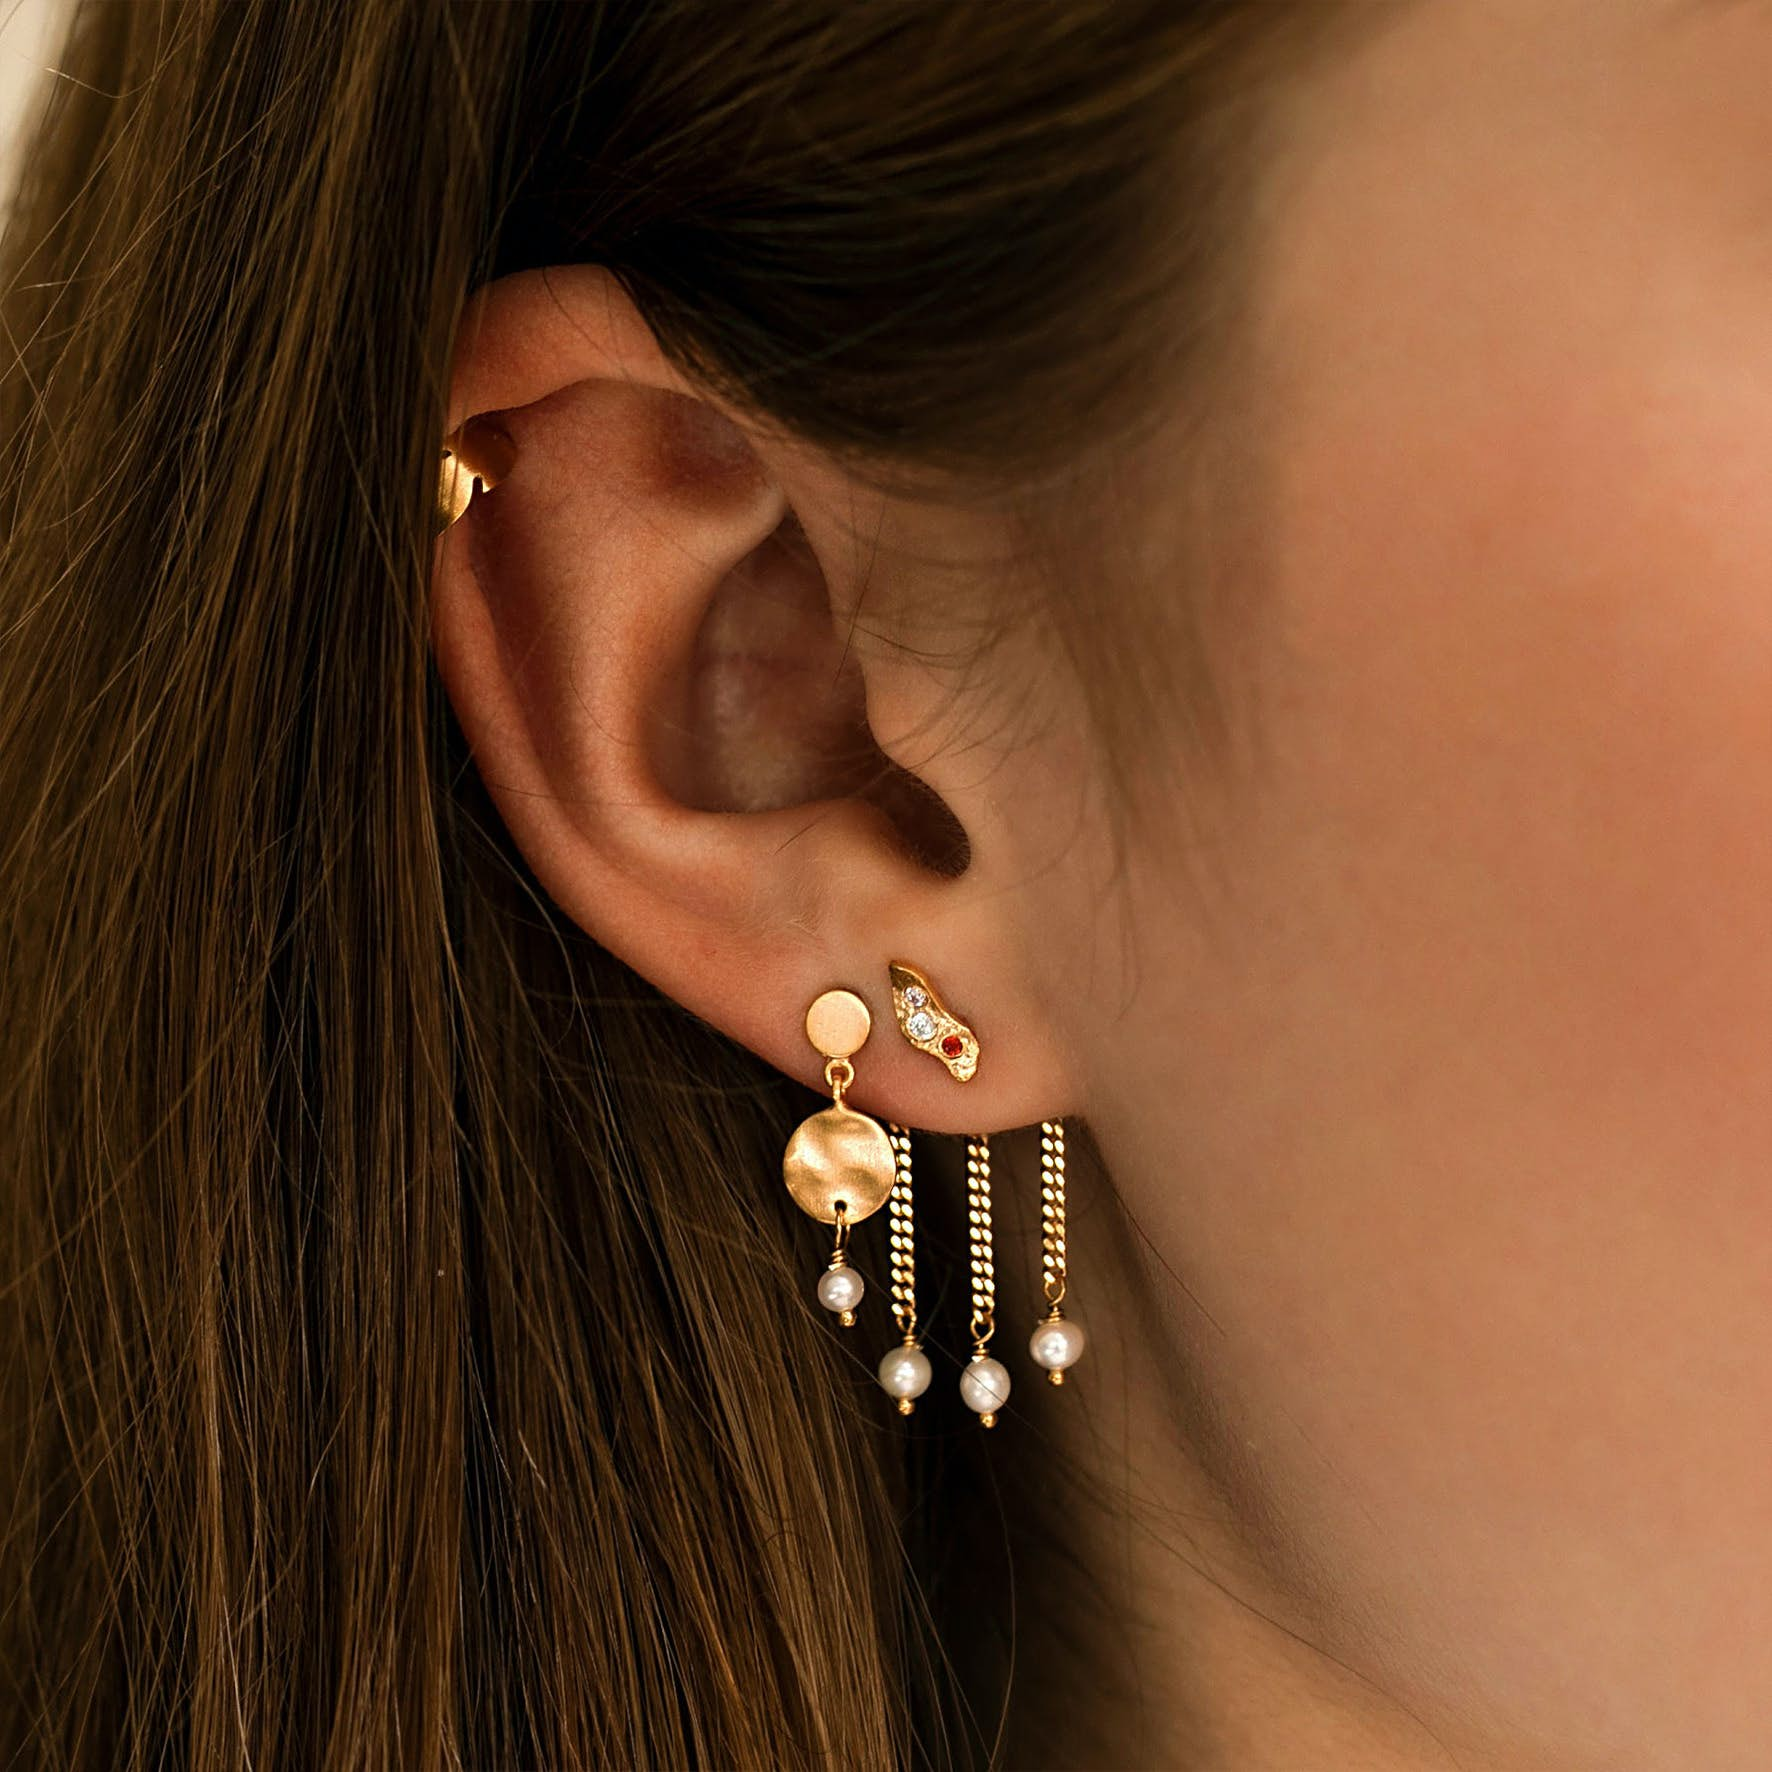 Petit Hammered Coin and Stone Earring - Pearl from STINE A Jewelry in Goldplated-Silver Sterling 925|Freshwater Pearl